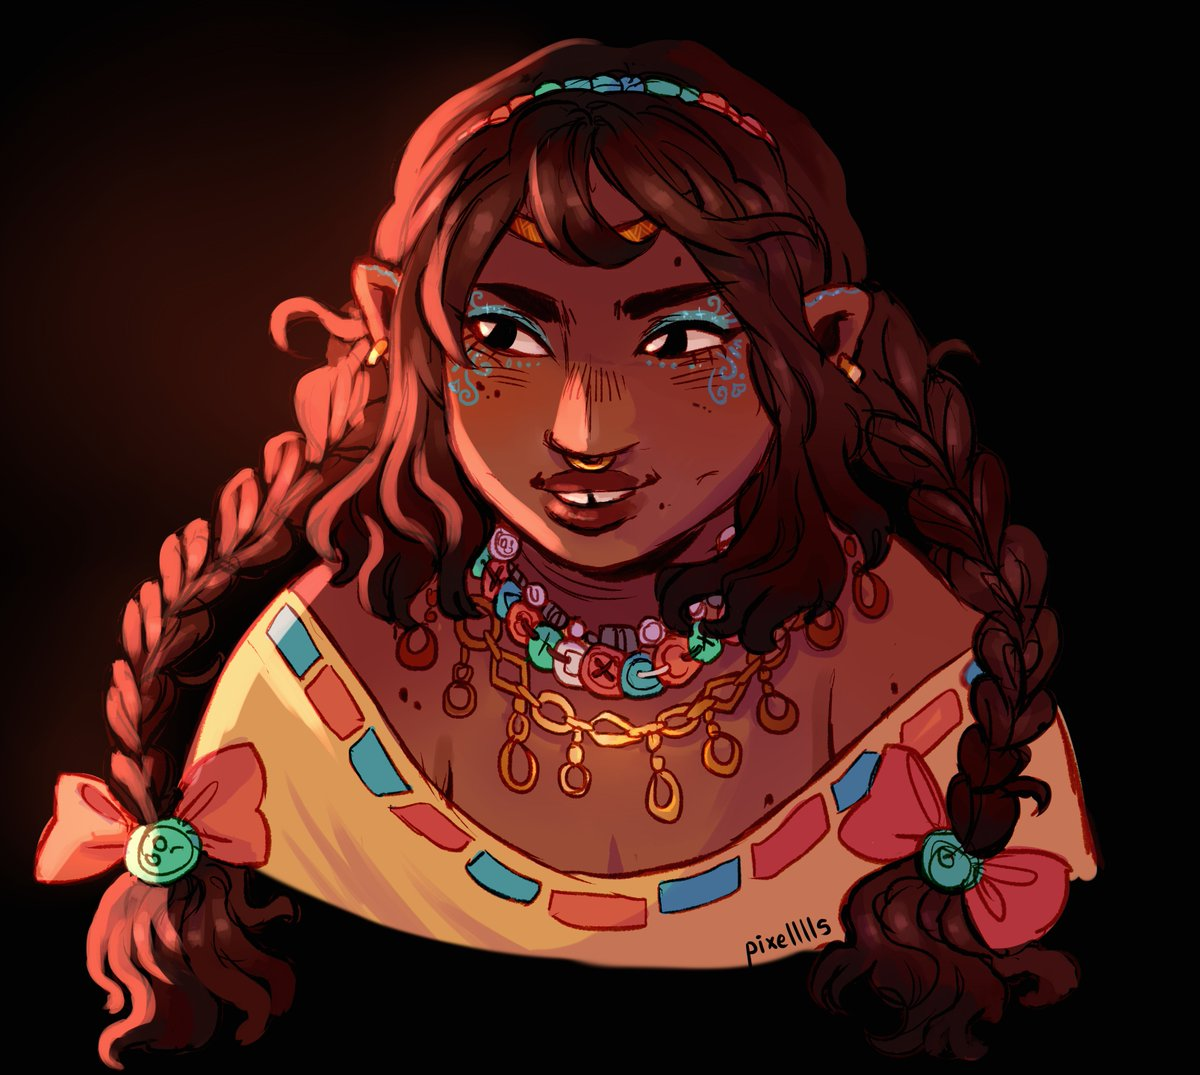 Replying to @pixelllls: doodled a veth because I don't draw her enough!